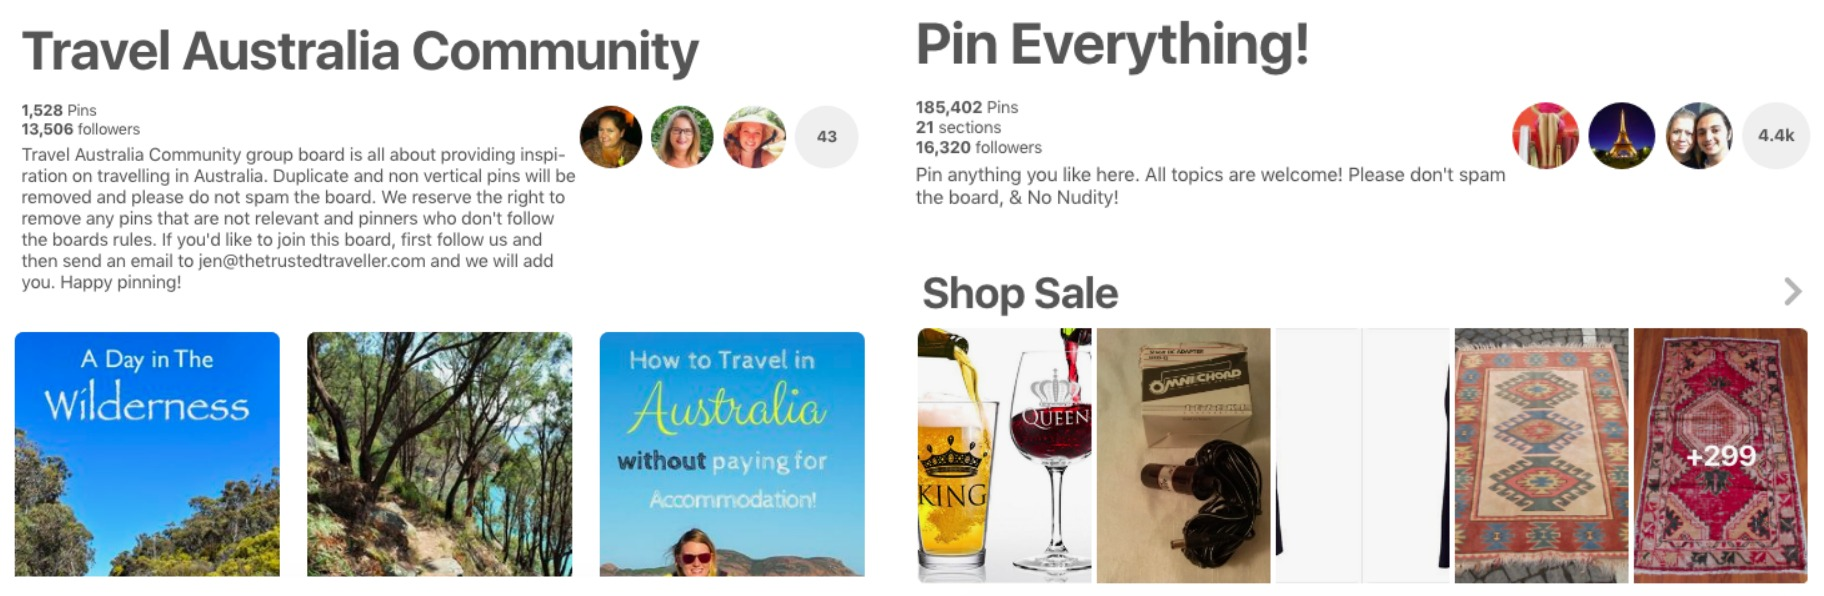 How to use Pinterest to send traffic to your blog - When joining group boards you want to stick to your niche as much as possible. The very large and very generic 'pin everything' boards will not be as beneficial as the on-niche boards (even if they are smaller).